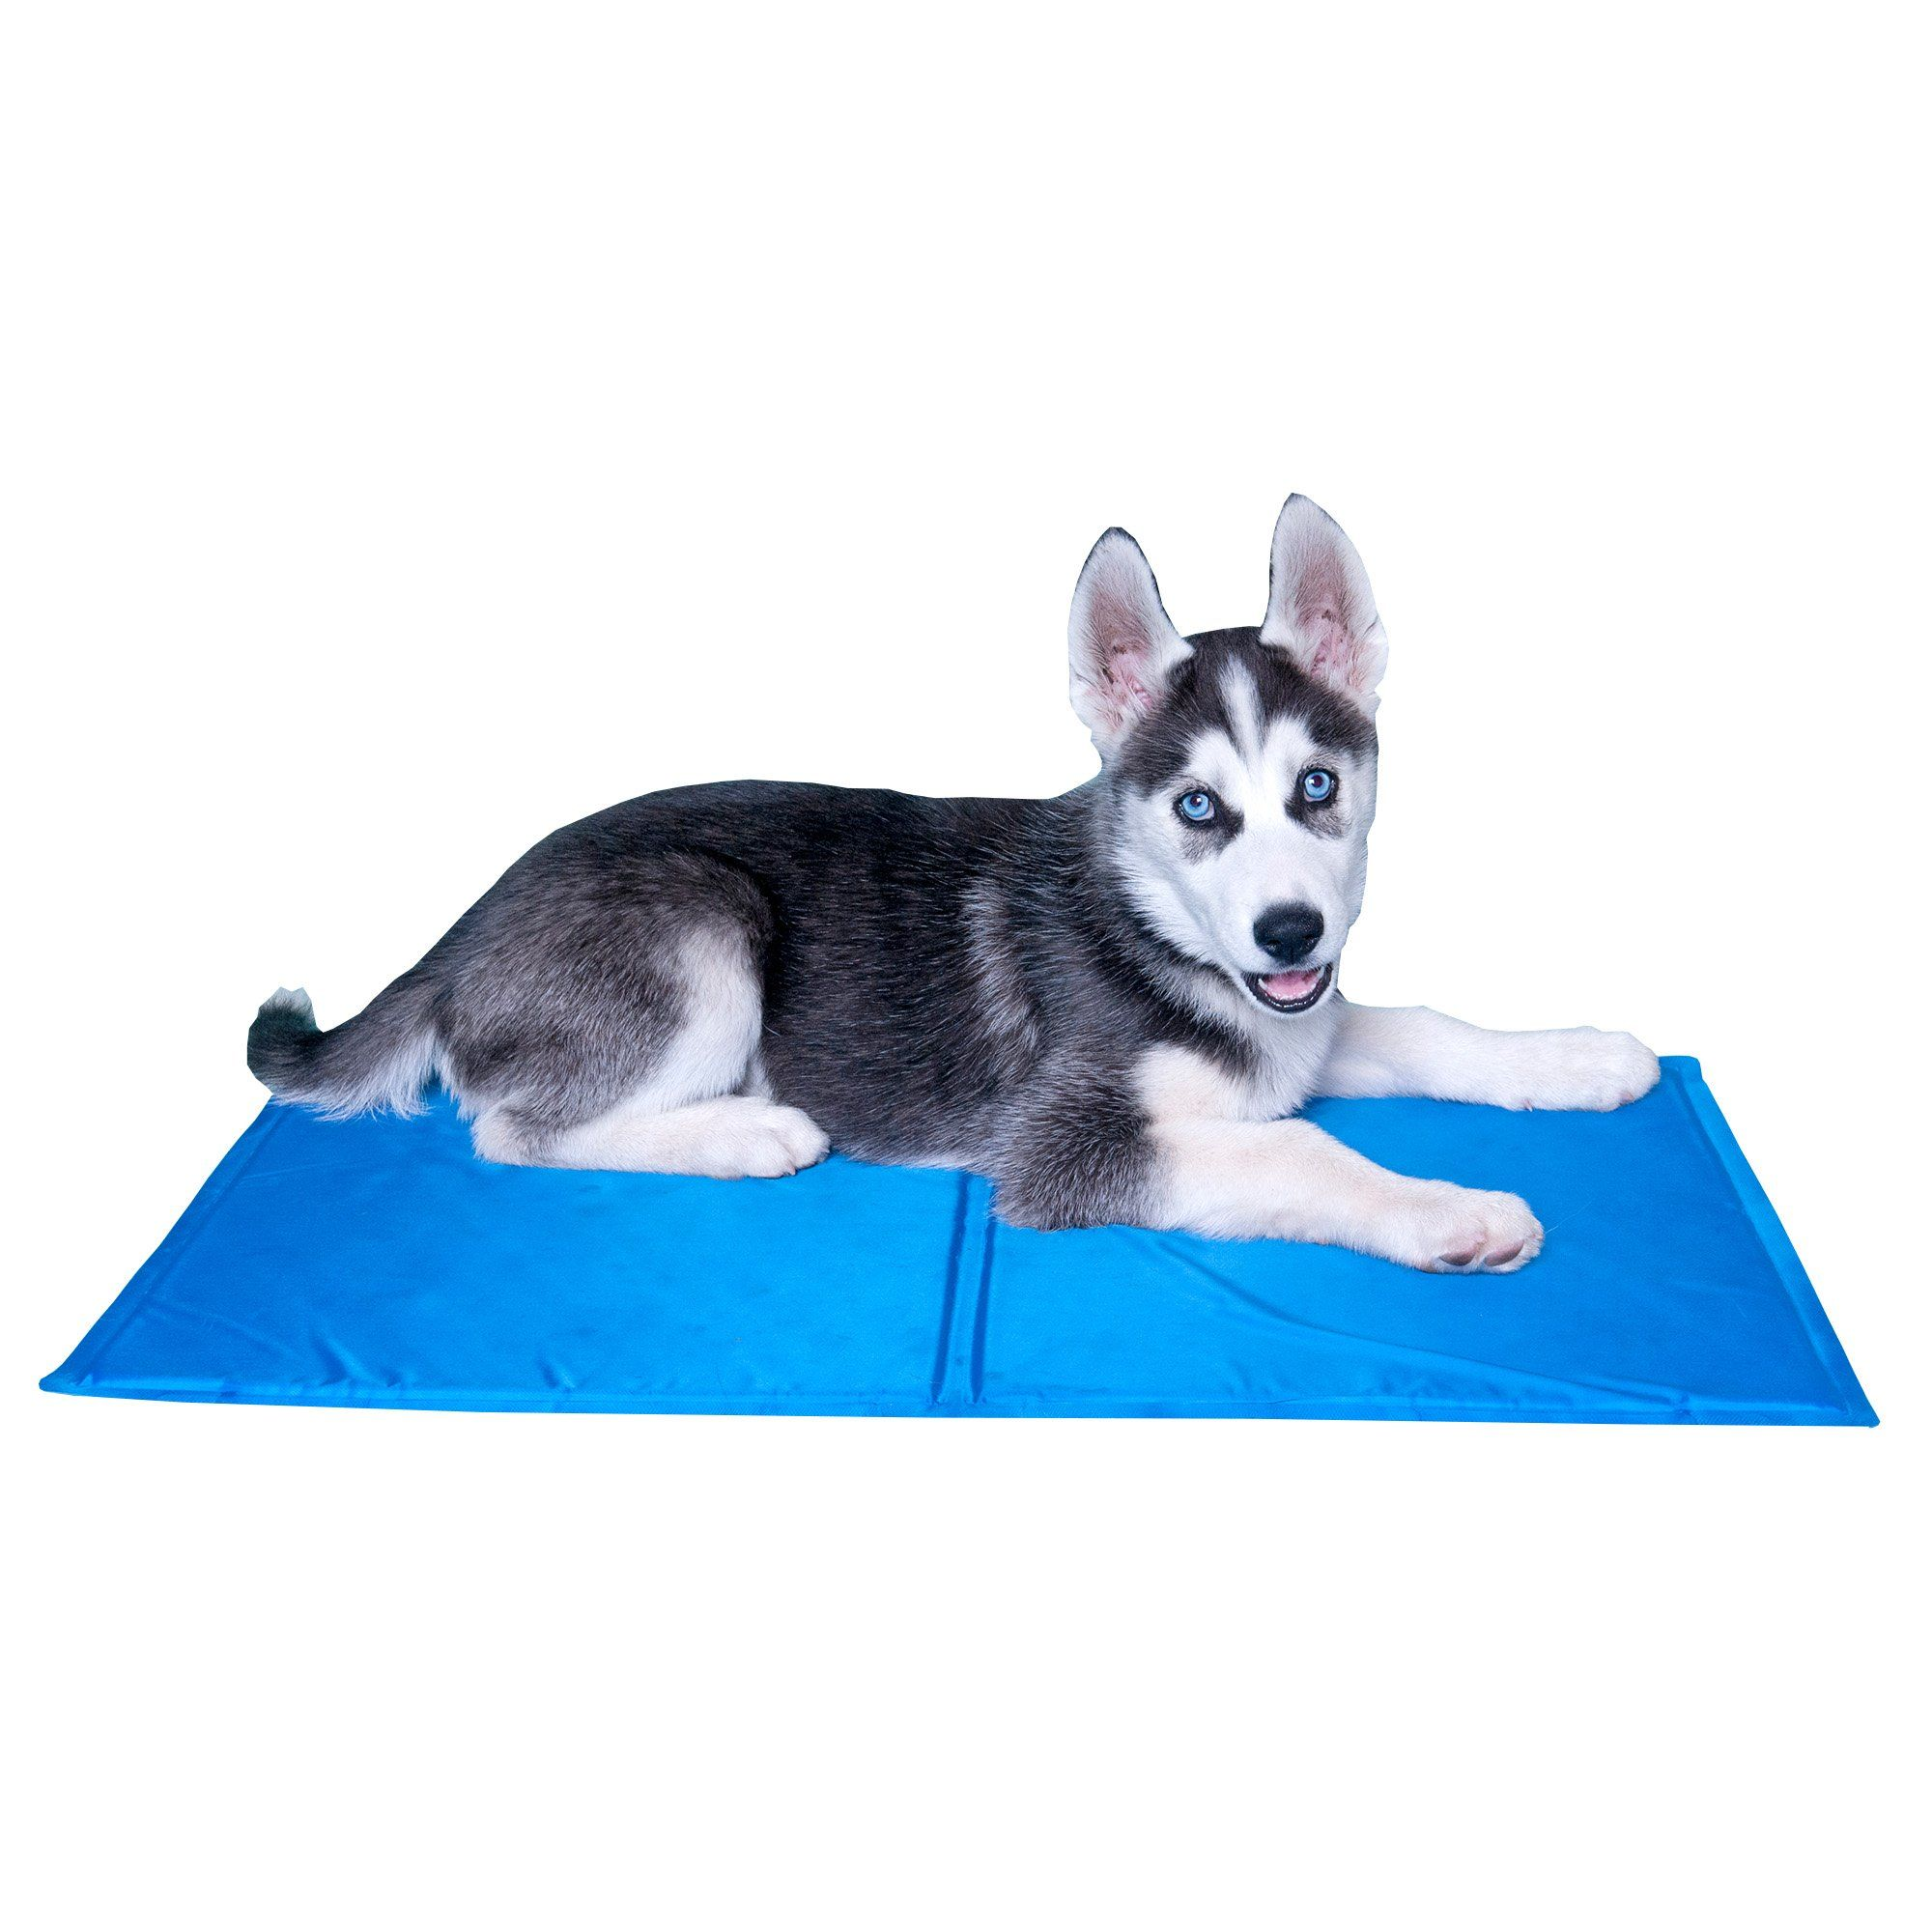 Pet Dog Cooling Gel Mats For Small Dogs And Cats Details Can